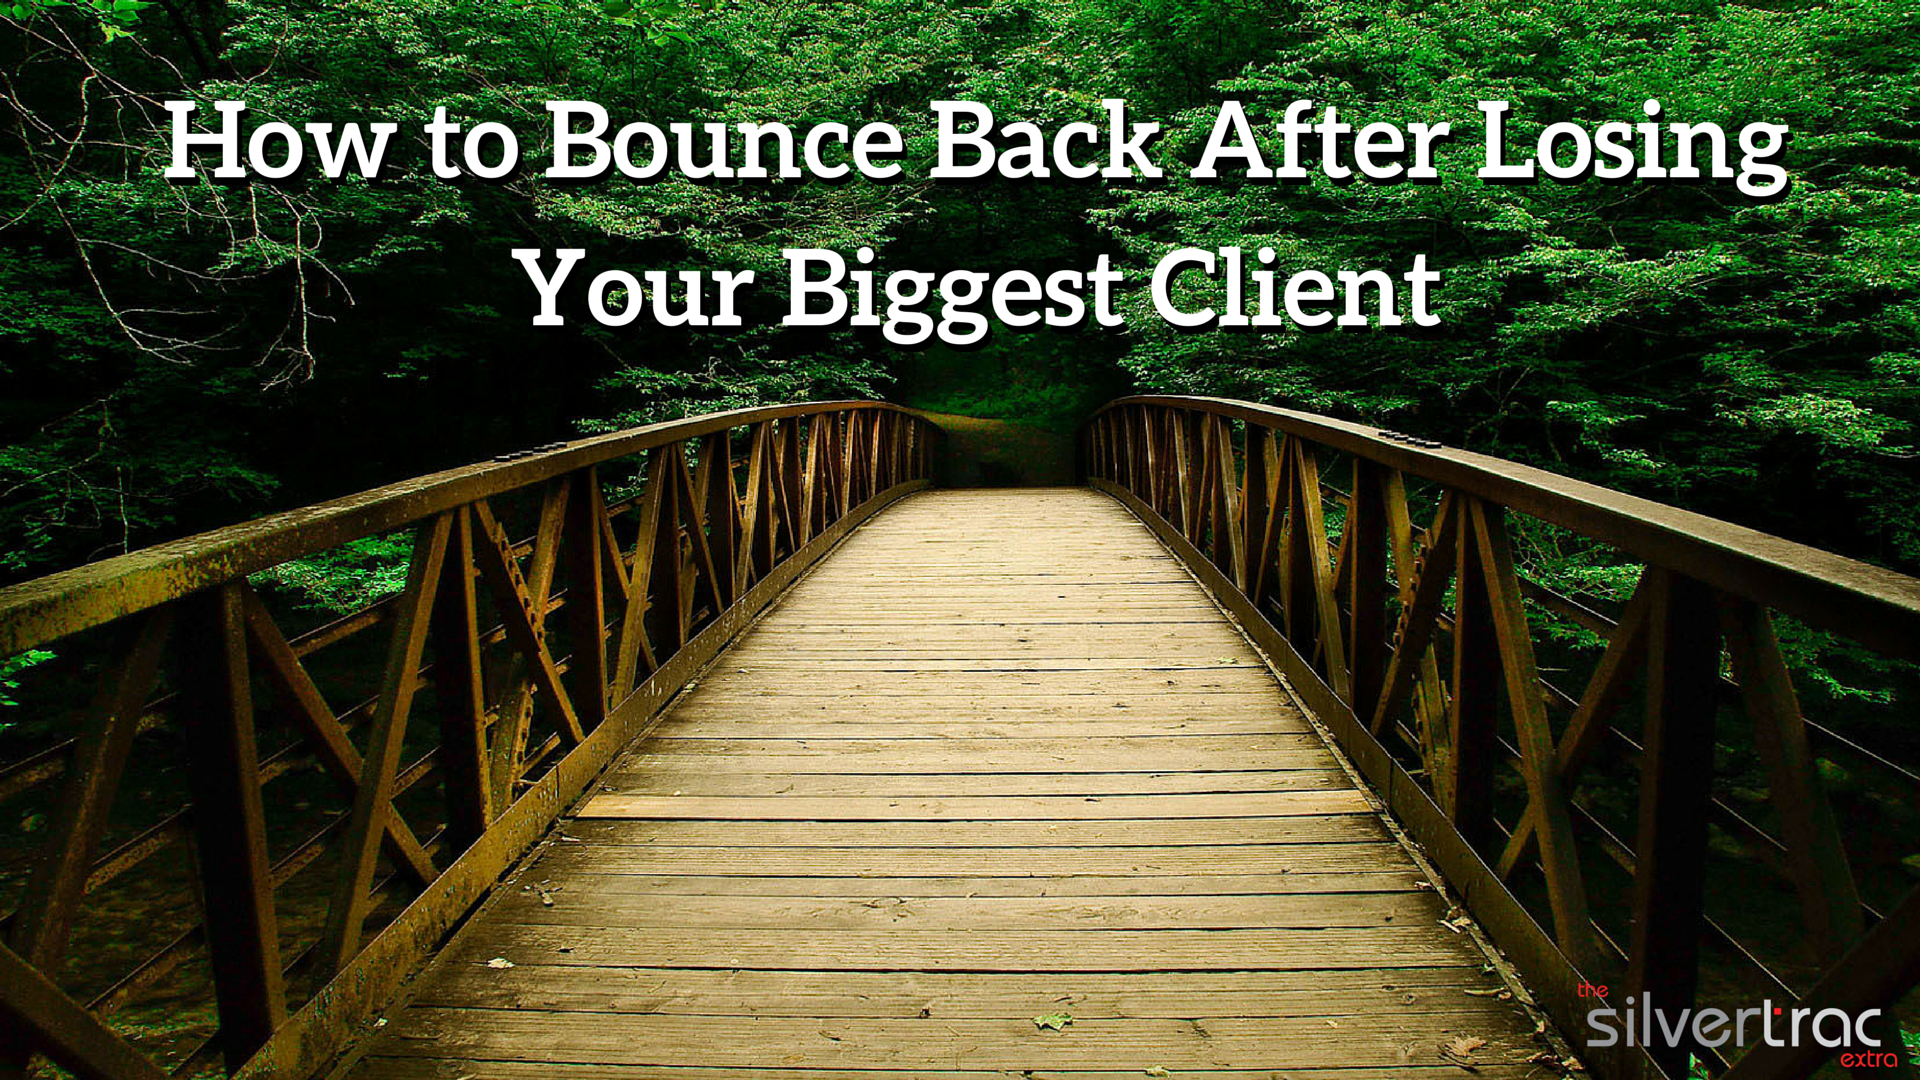 Bounce Back After Losing Your Biggest Client